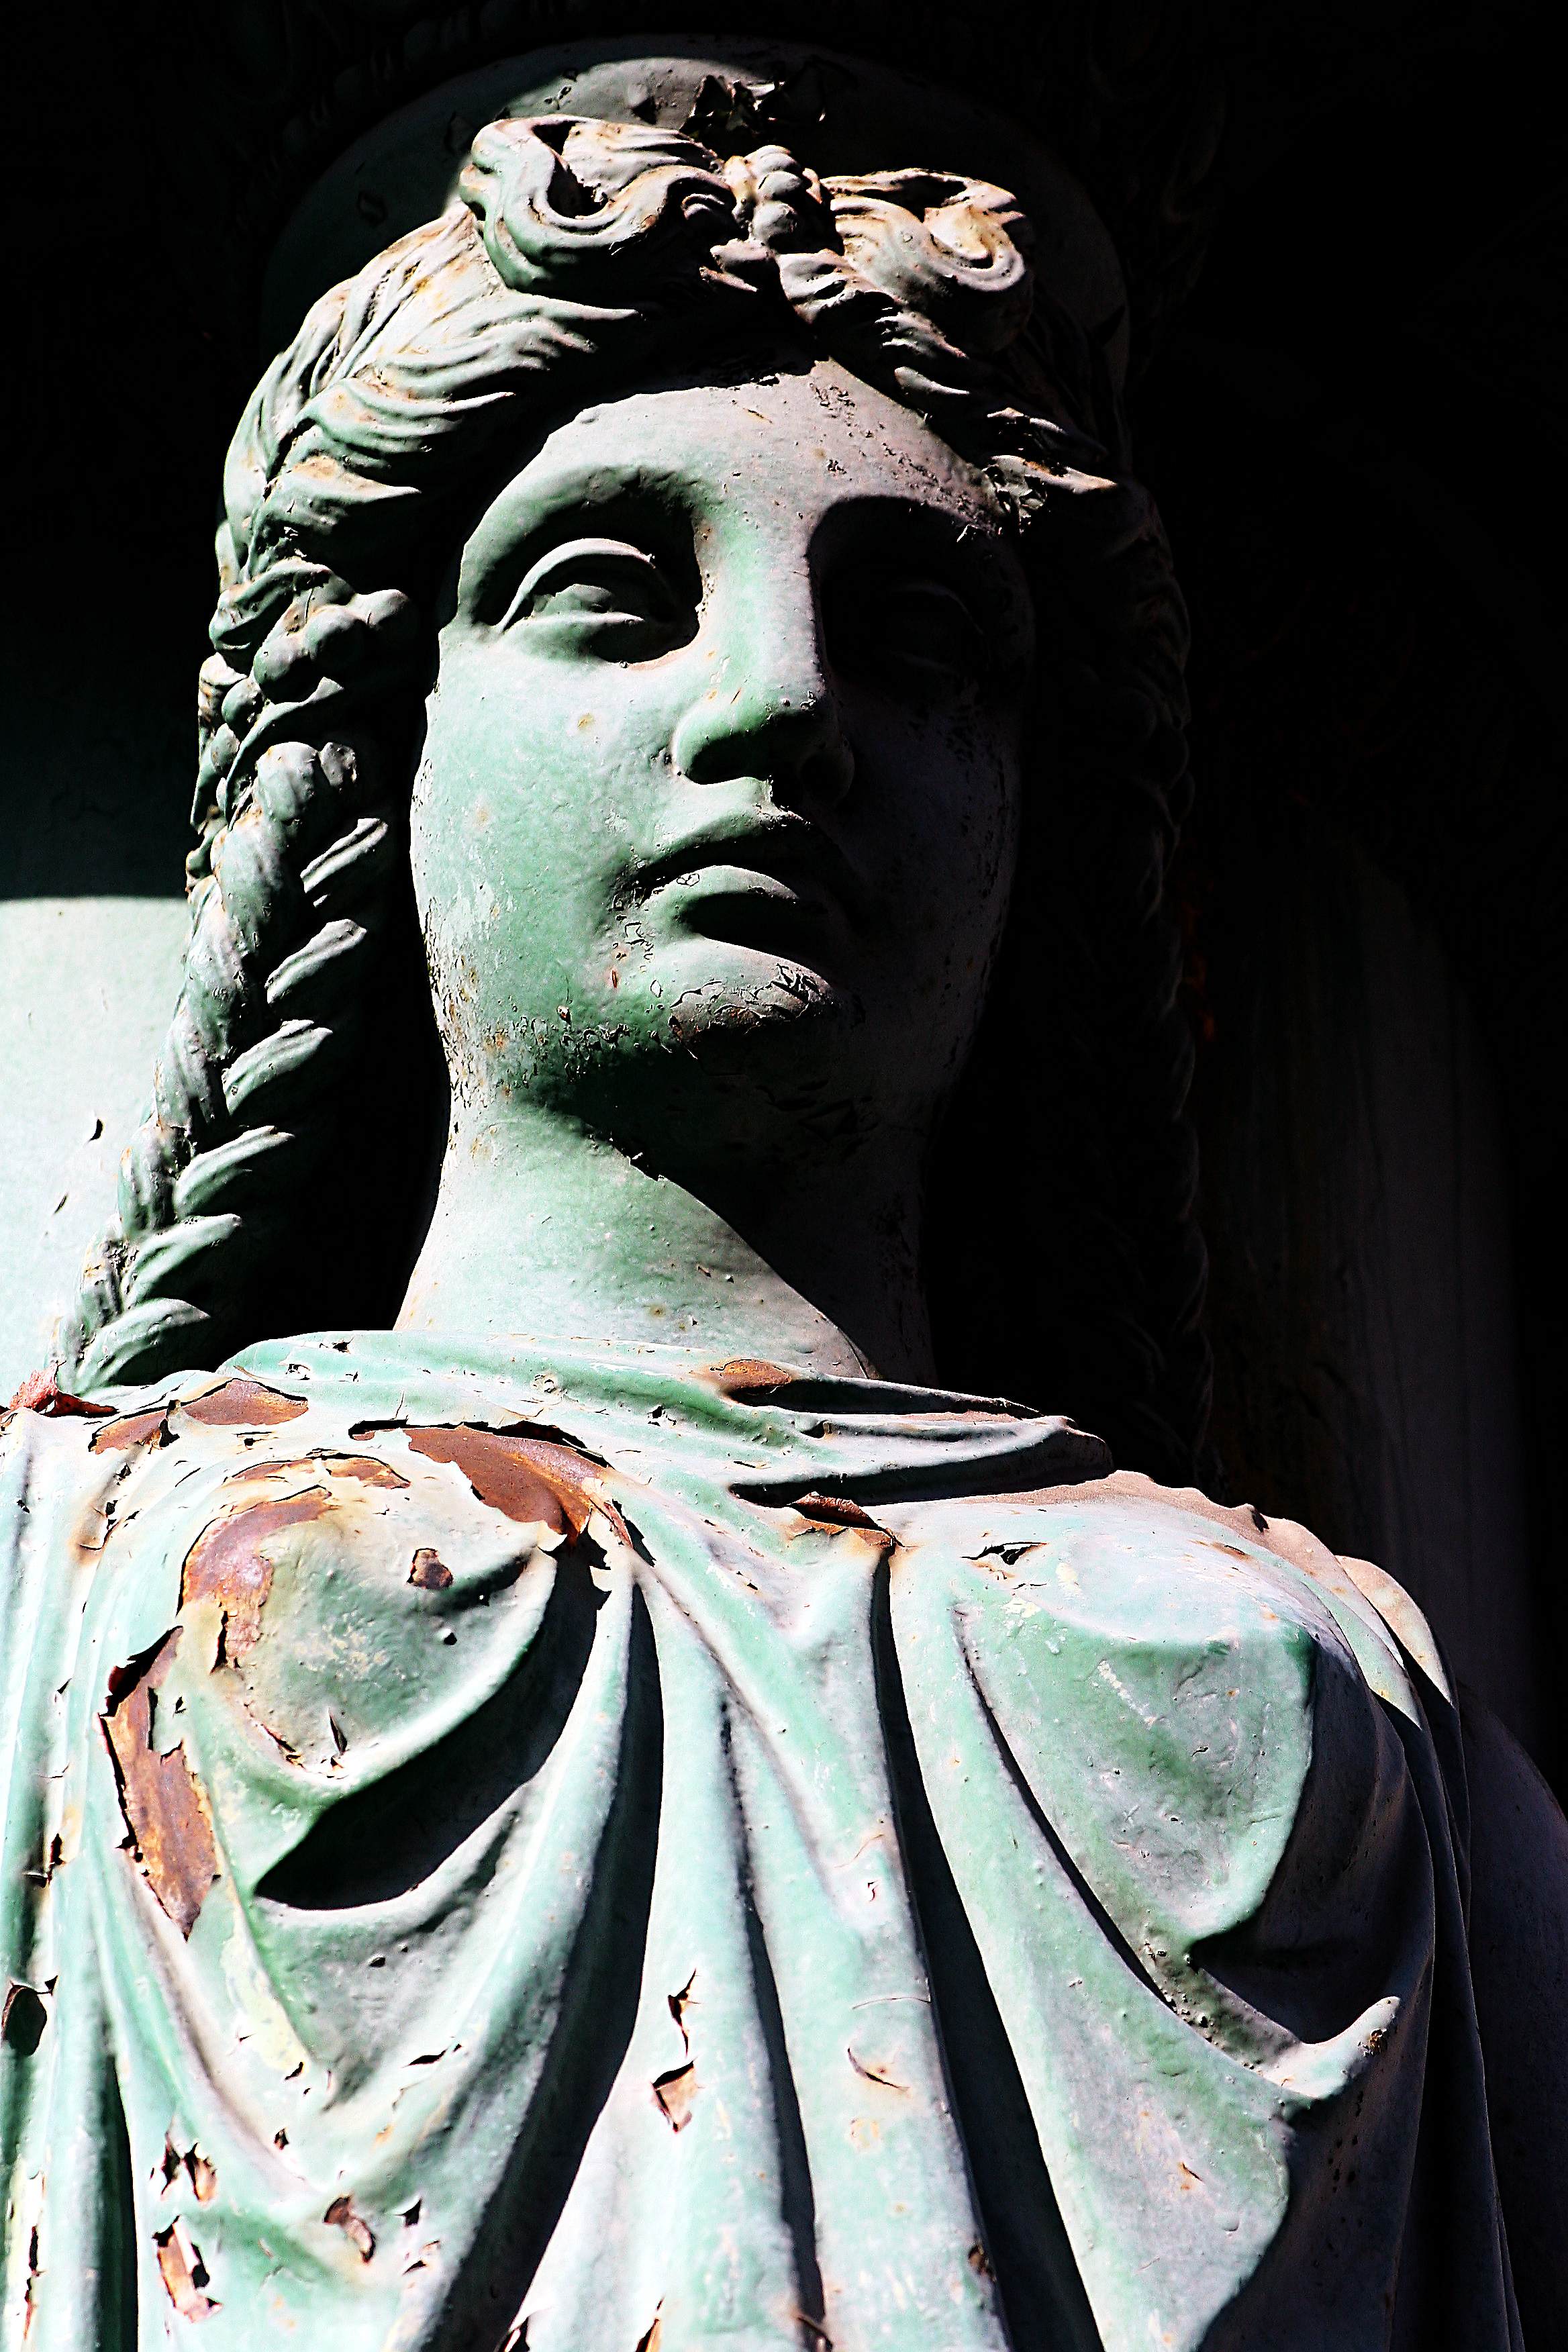 Medieval statue, female in robes with braided hair